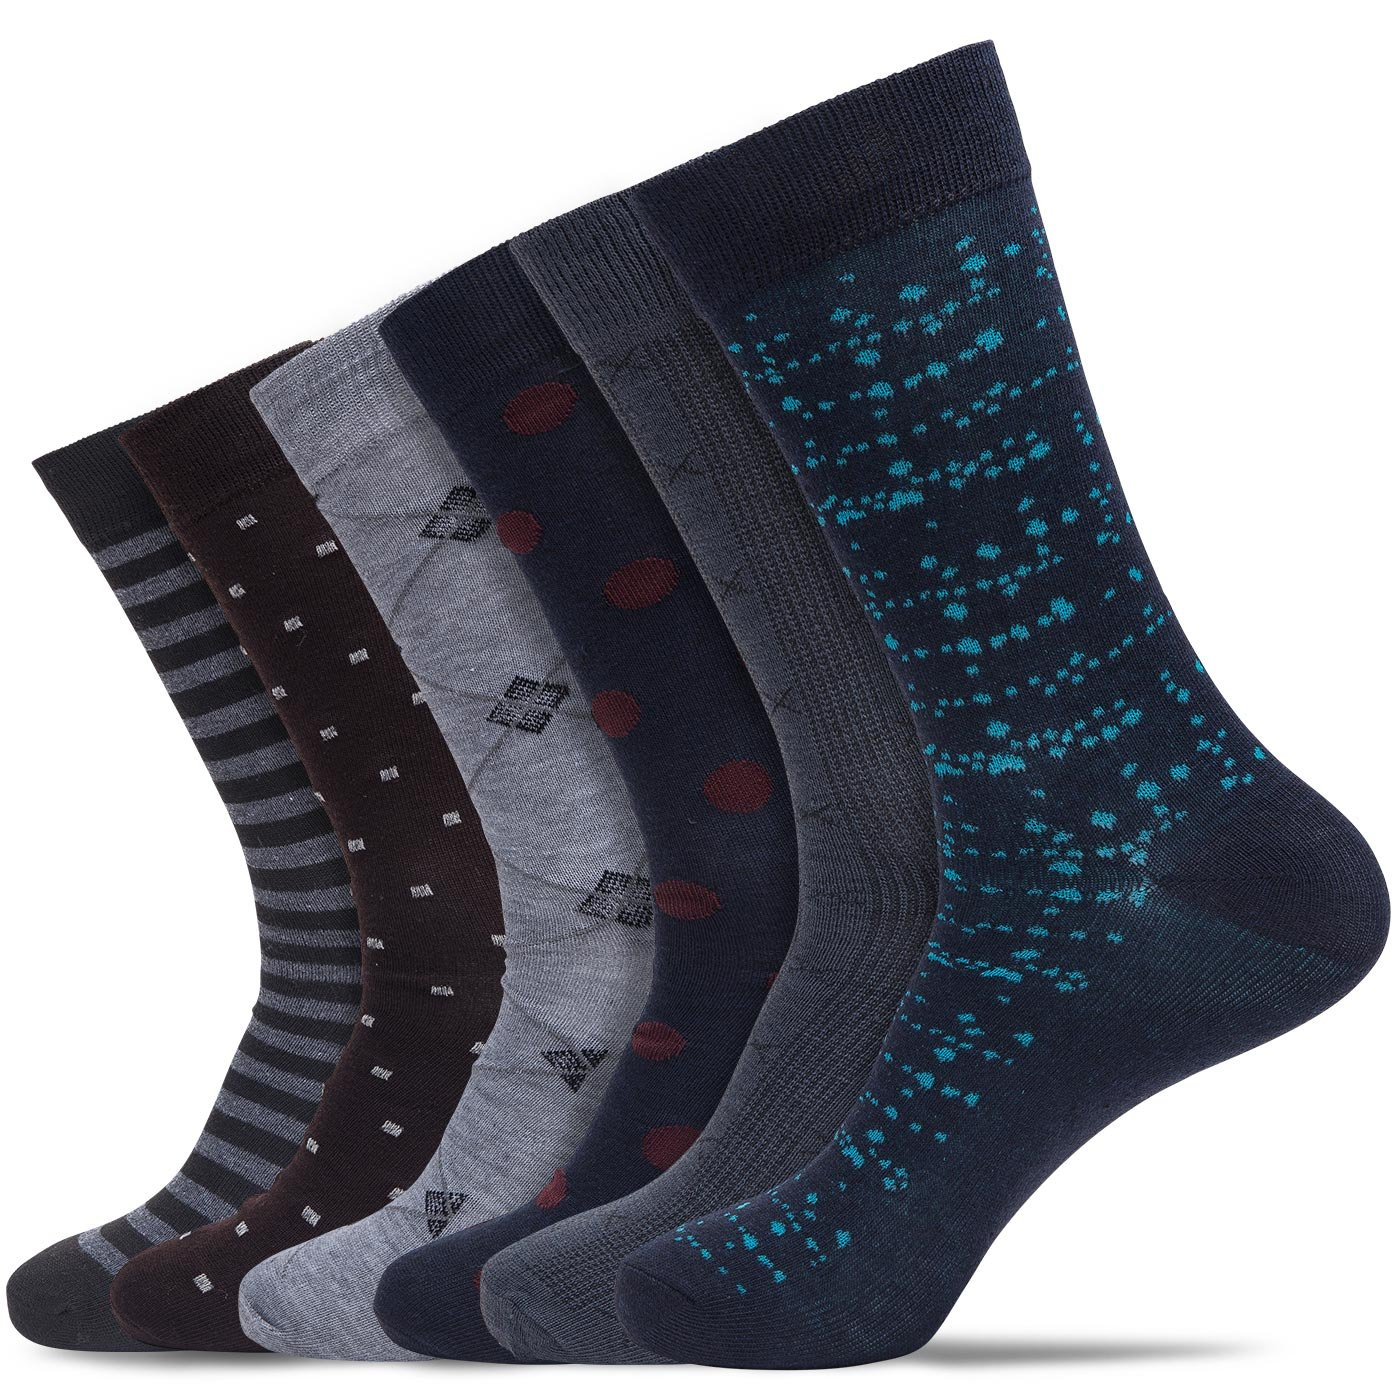 Active Premium Mens Thin Weight Mid-to-Lower Calf Professional Design Business Dress Socks (6 Pairs) (Classic Multi, Shoe: 8-12/Sock: 10-13) by Active Premium (Image #1)